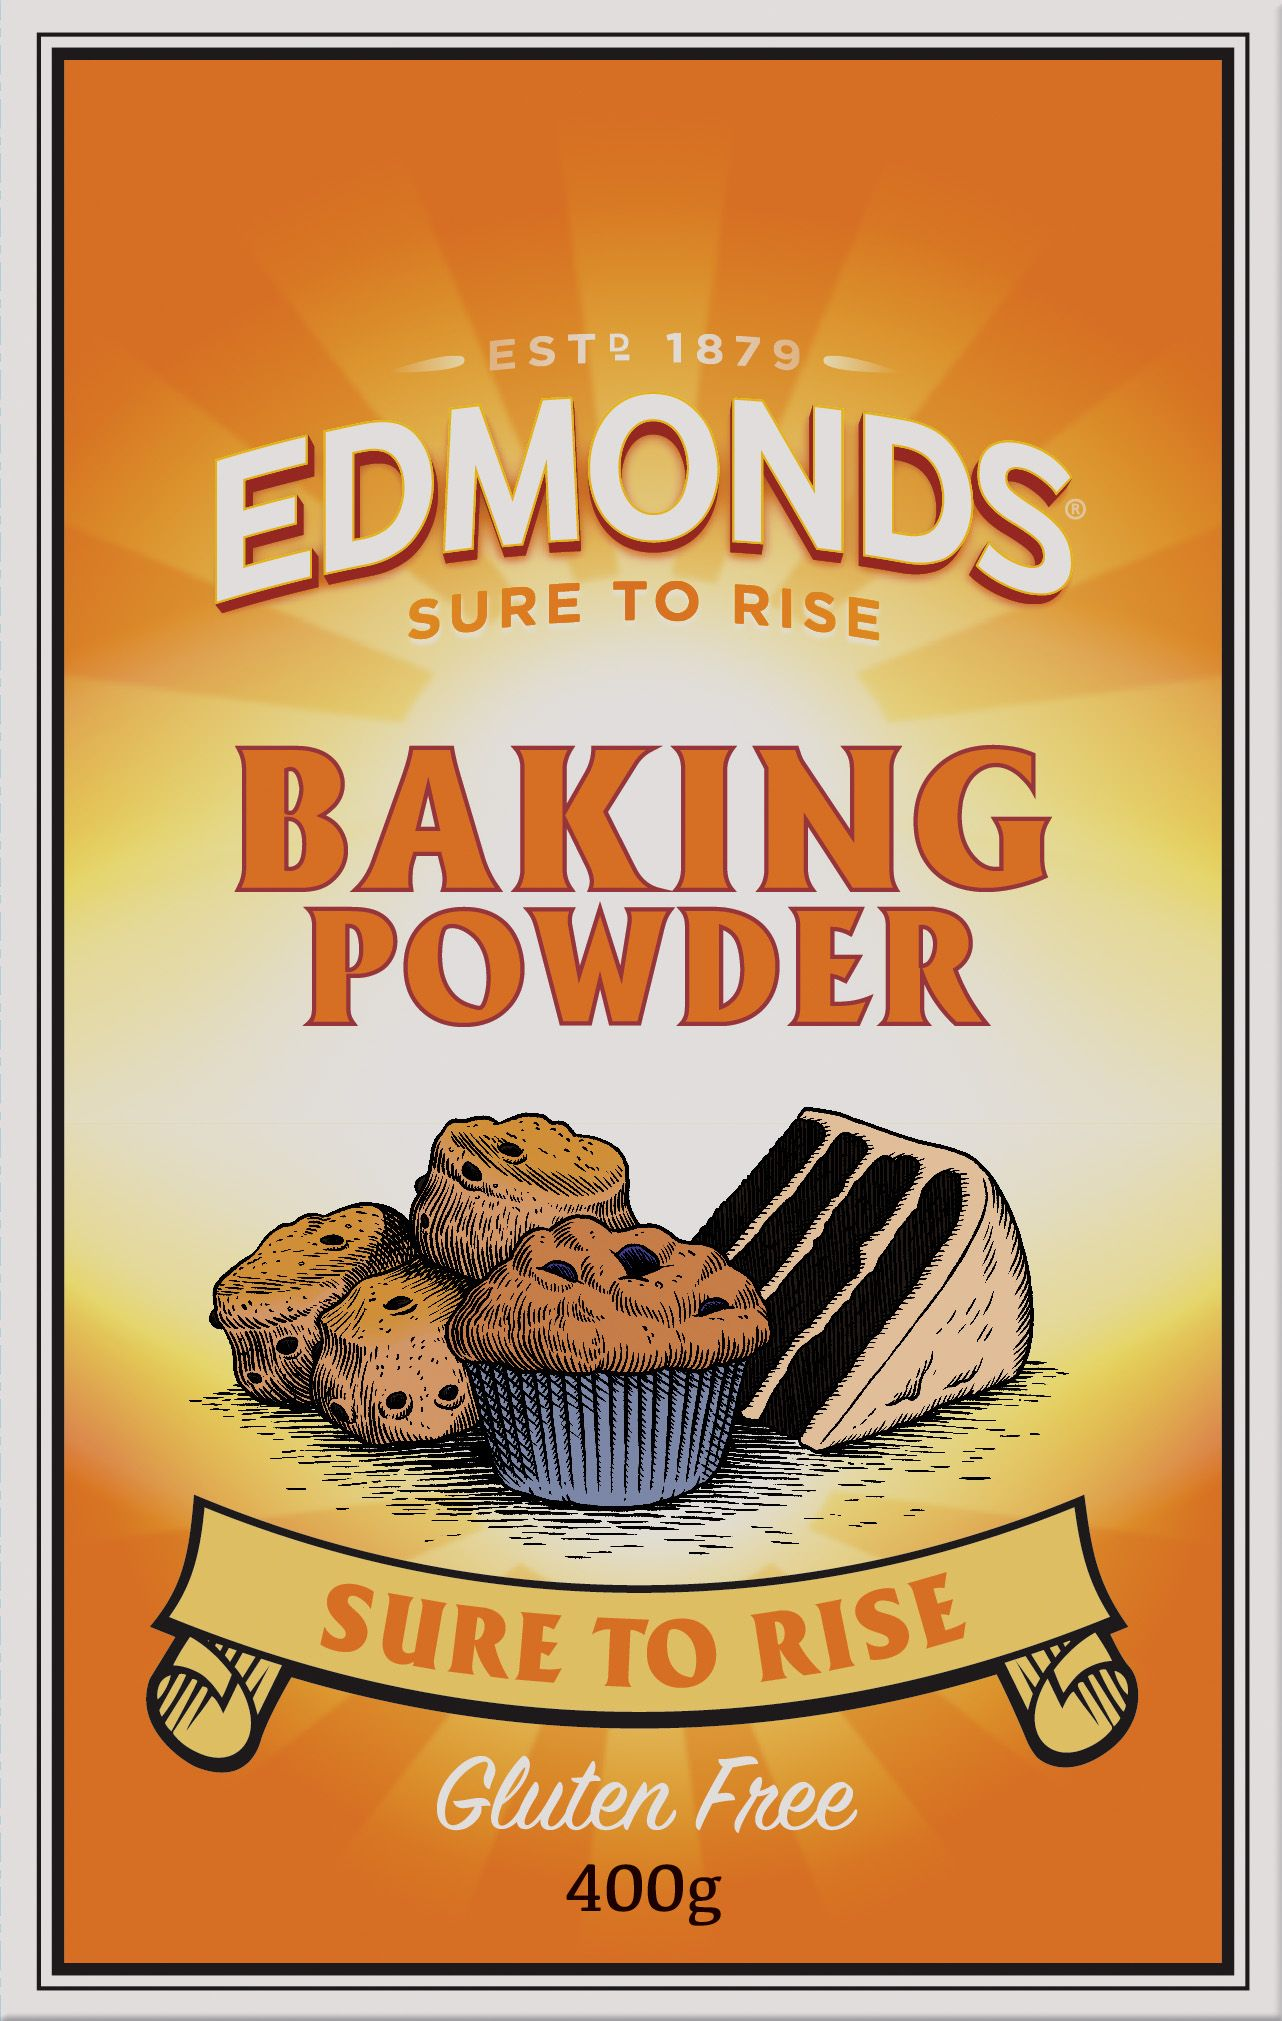 Edmonds Baking Powder Chocolate Chip Biscuits Butterfly Cakes Tray Bakes